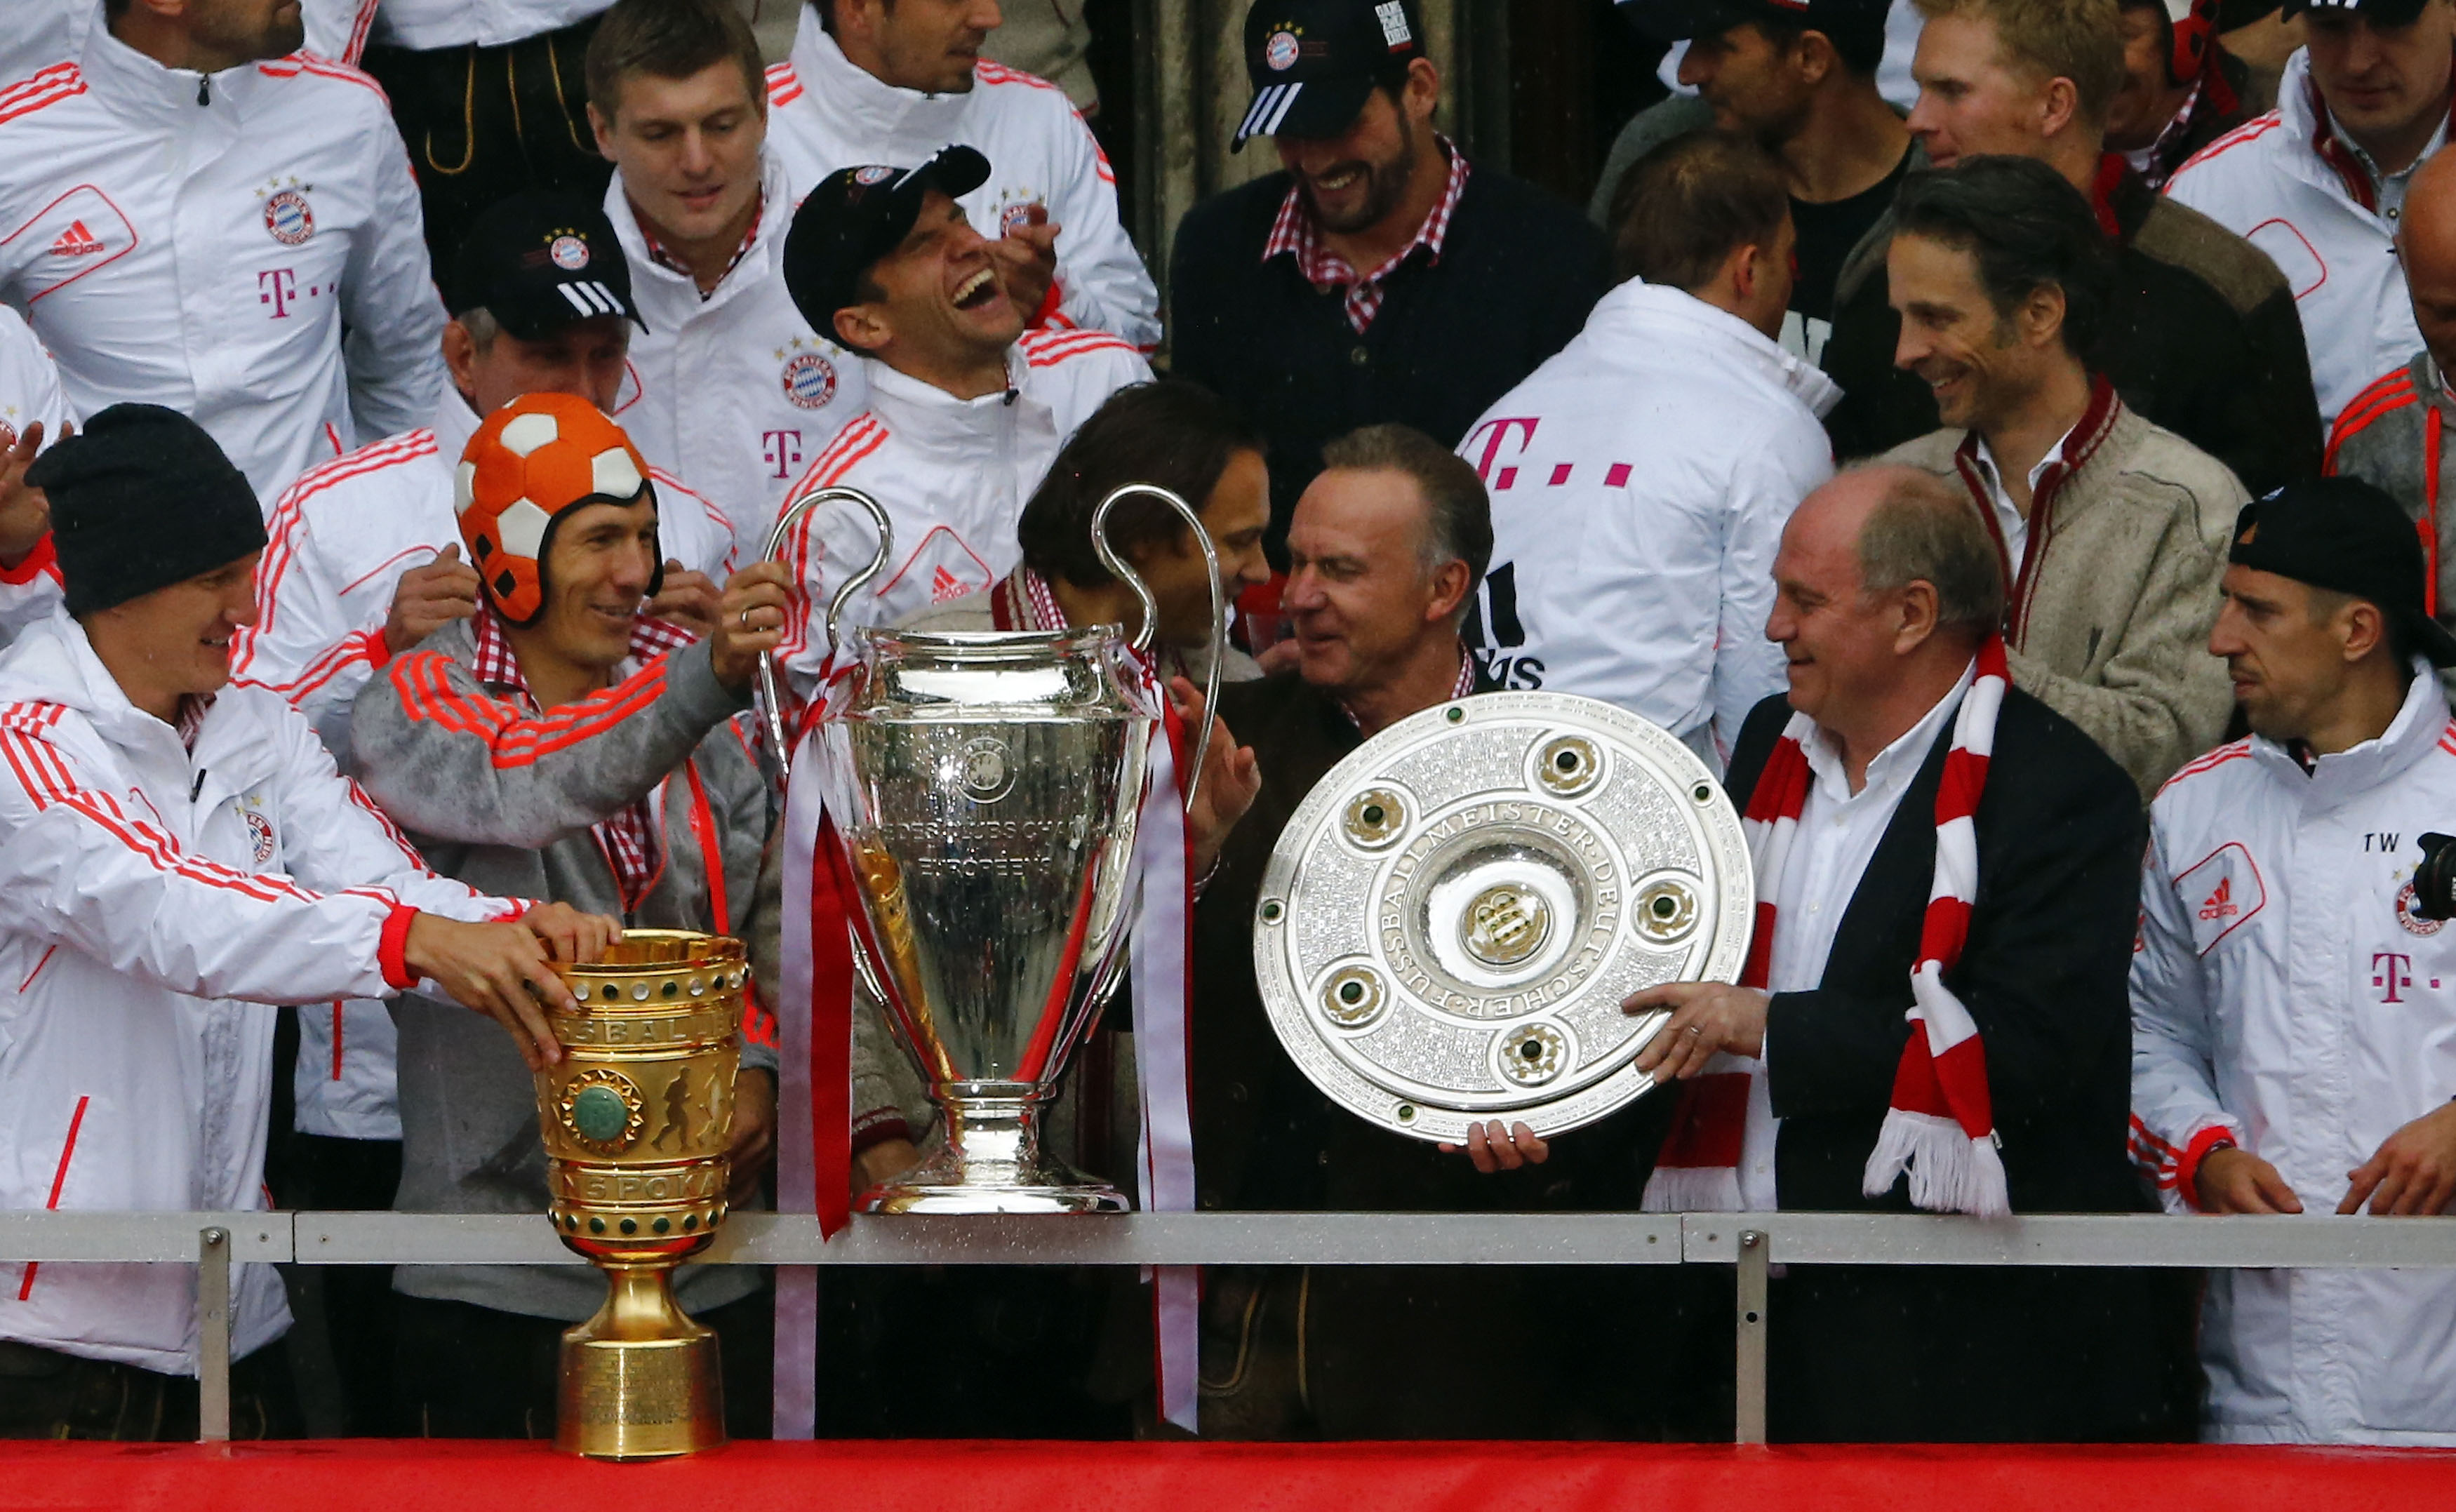 Bayern Munich's players and Chief Executive Karl-Heinz Rummenigge (3R) and President Uli Hoeness (2R) hold up German soccer cup (DFB Pokal), Champions League and German soccer championship Bundesliga trophies as they stand on the balcony of the town hall in Munich June 2, 2013. Bayern Munich completed the treble by beating VfB Stuttgart 3-2 in the German Cup final on June 1, 2013, adding the trophy to the Champions League and Bundesliga titles they have already won this season. REUTERS/Michael Dalder (GERMANY - Tags: SPORT SOCCER) - RTX1099B